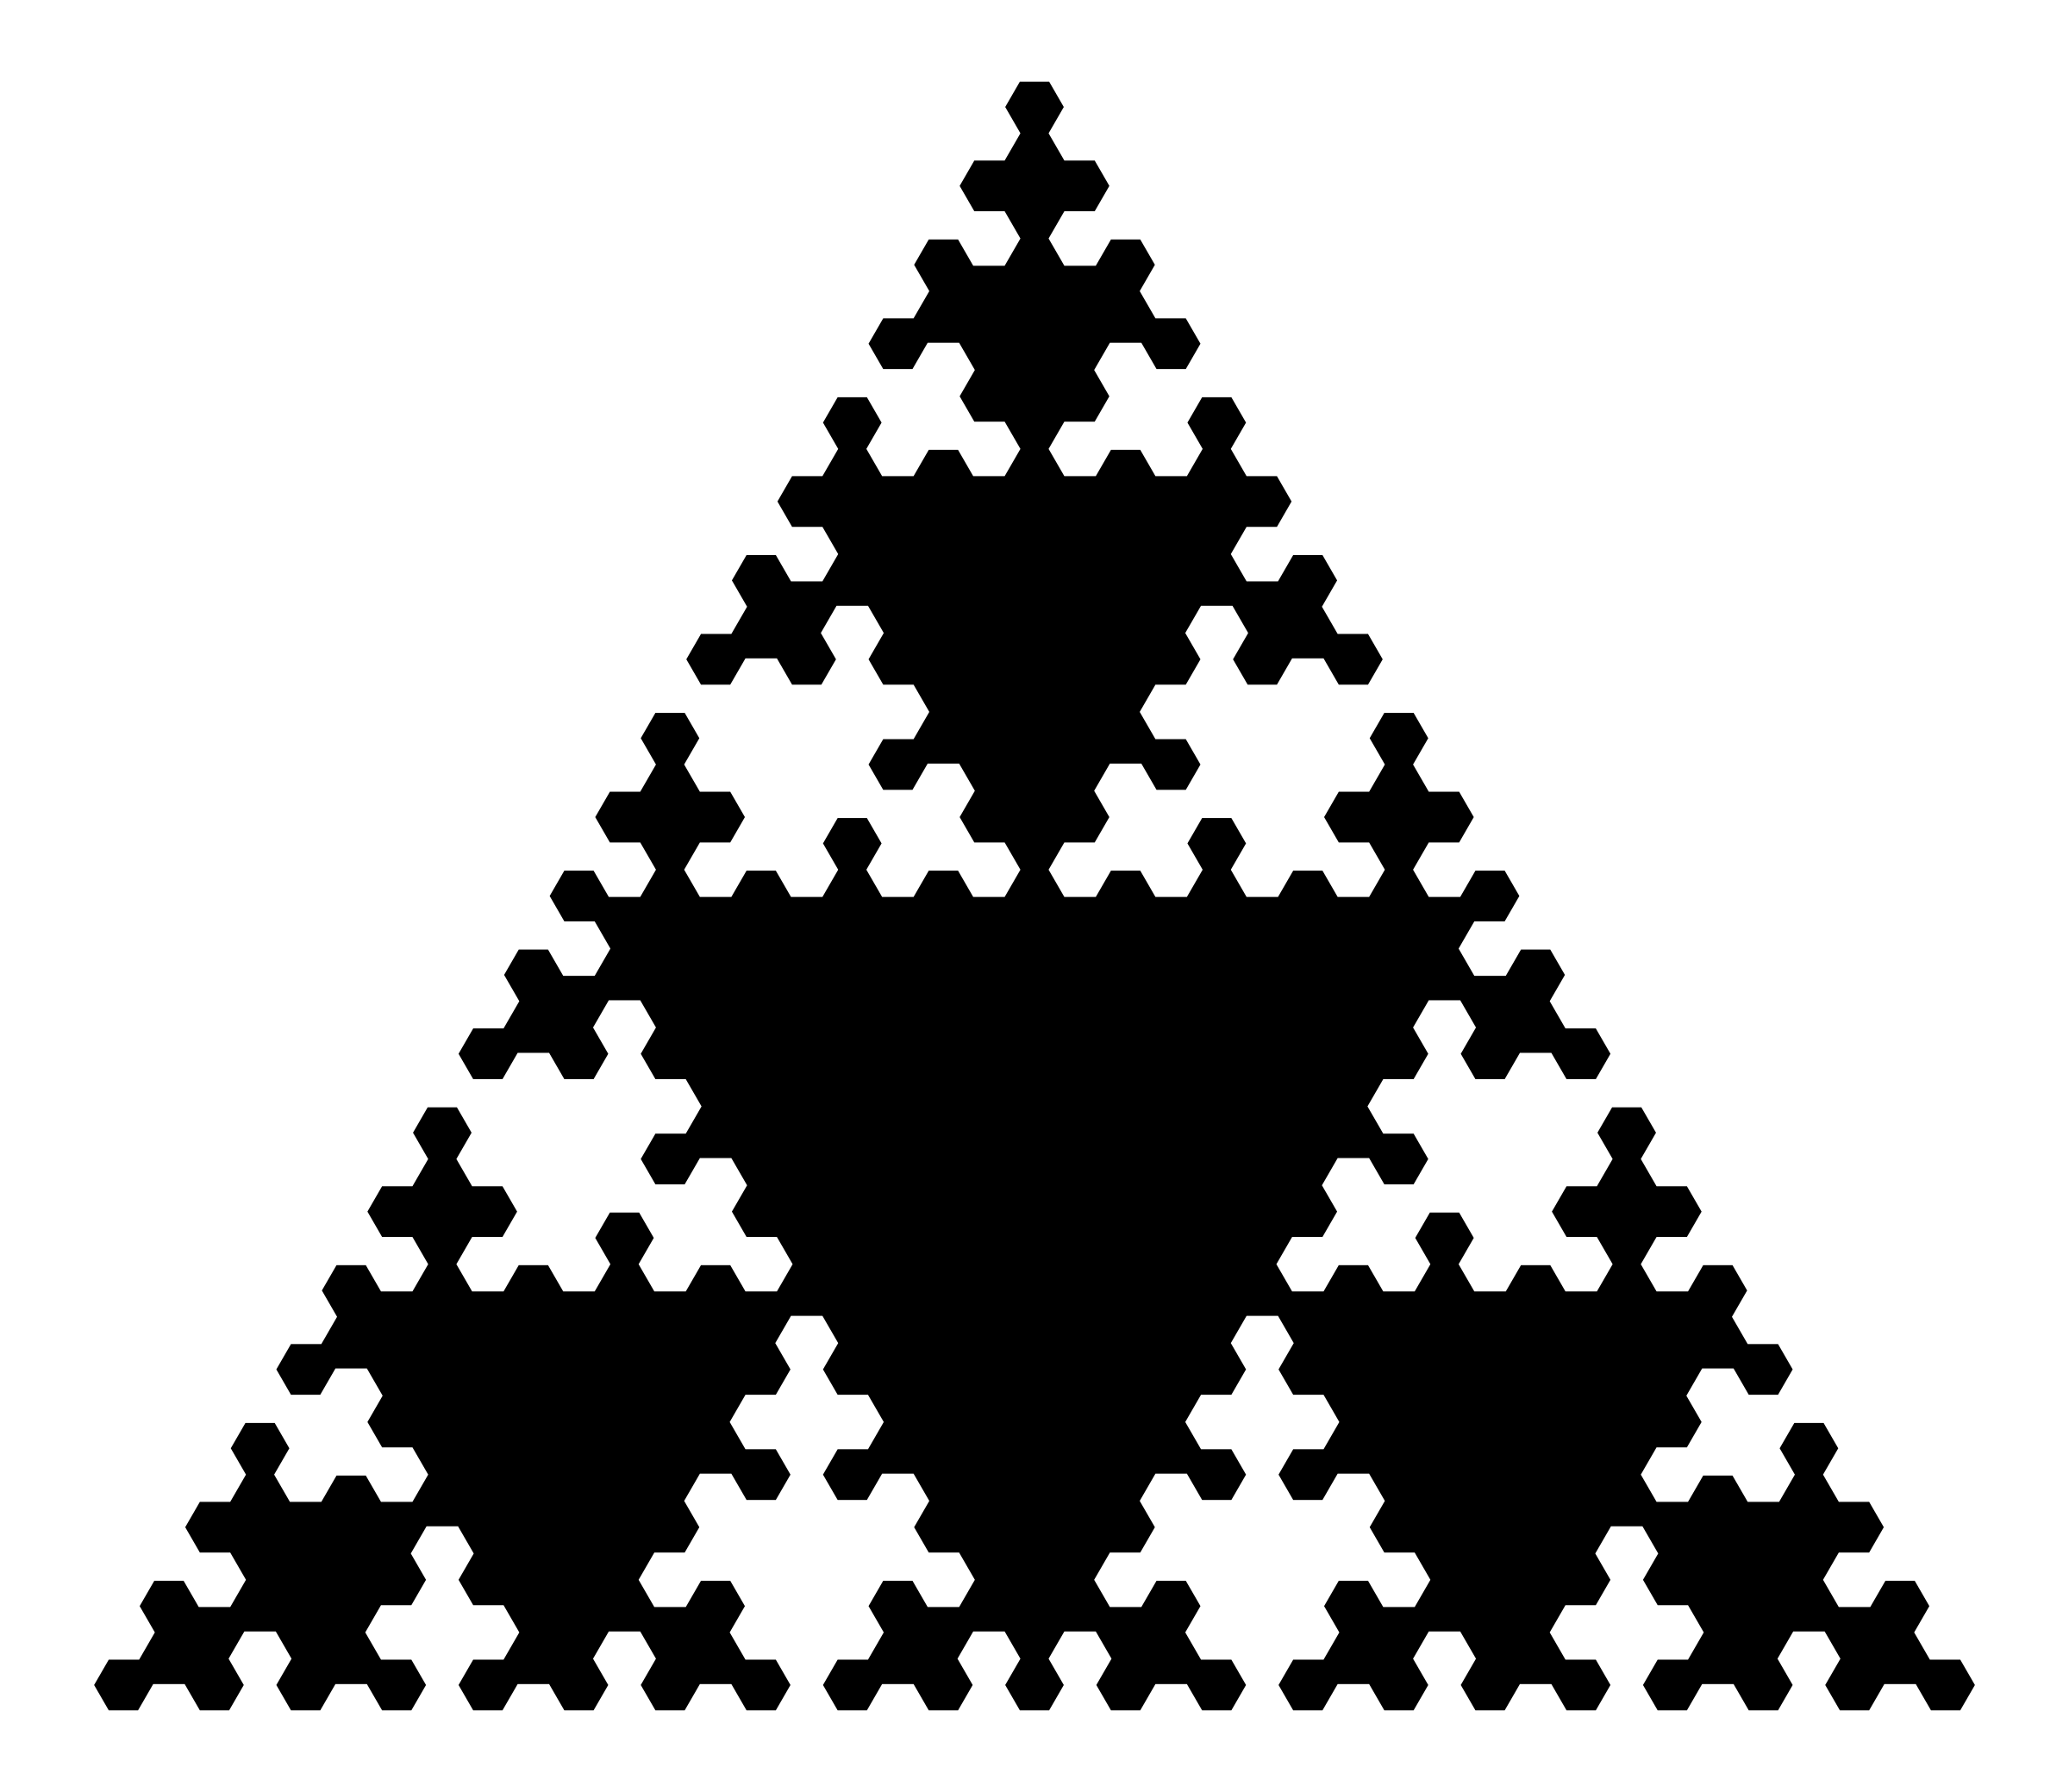 Sierpinskis Triangle by kevinalle